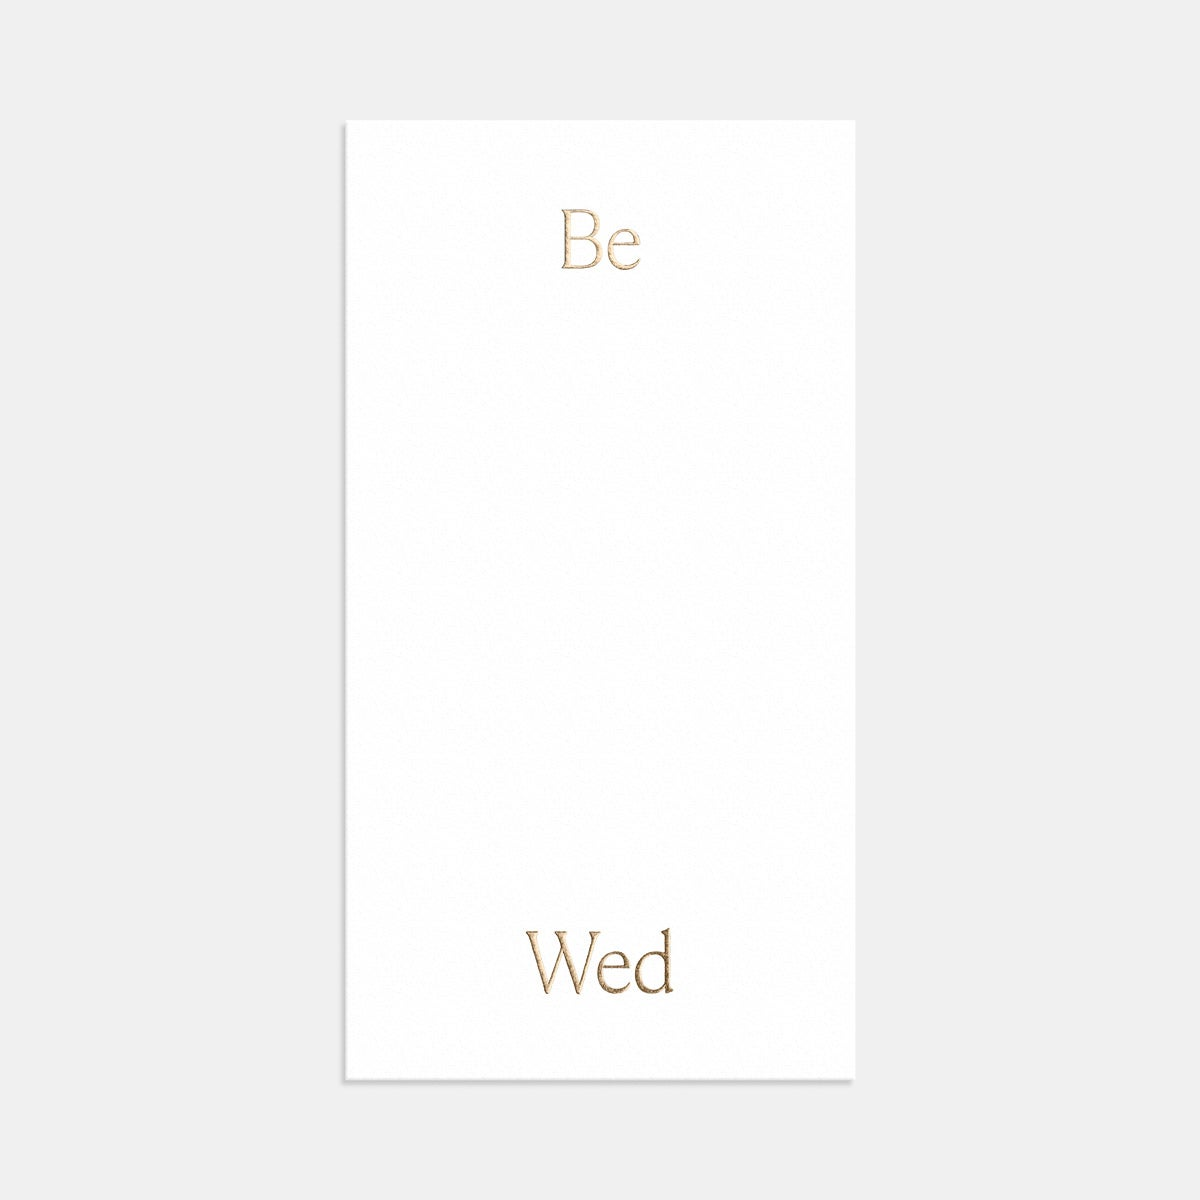 artifact be wed invitation